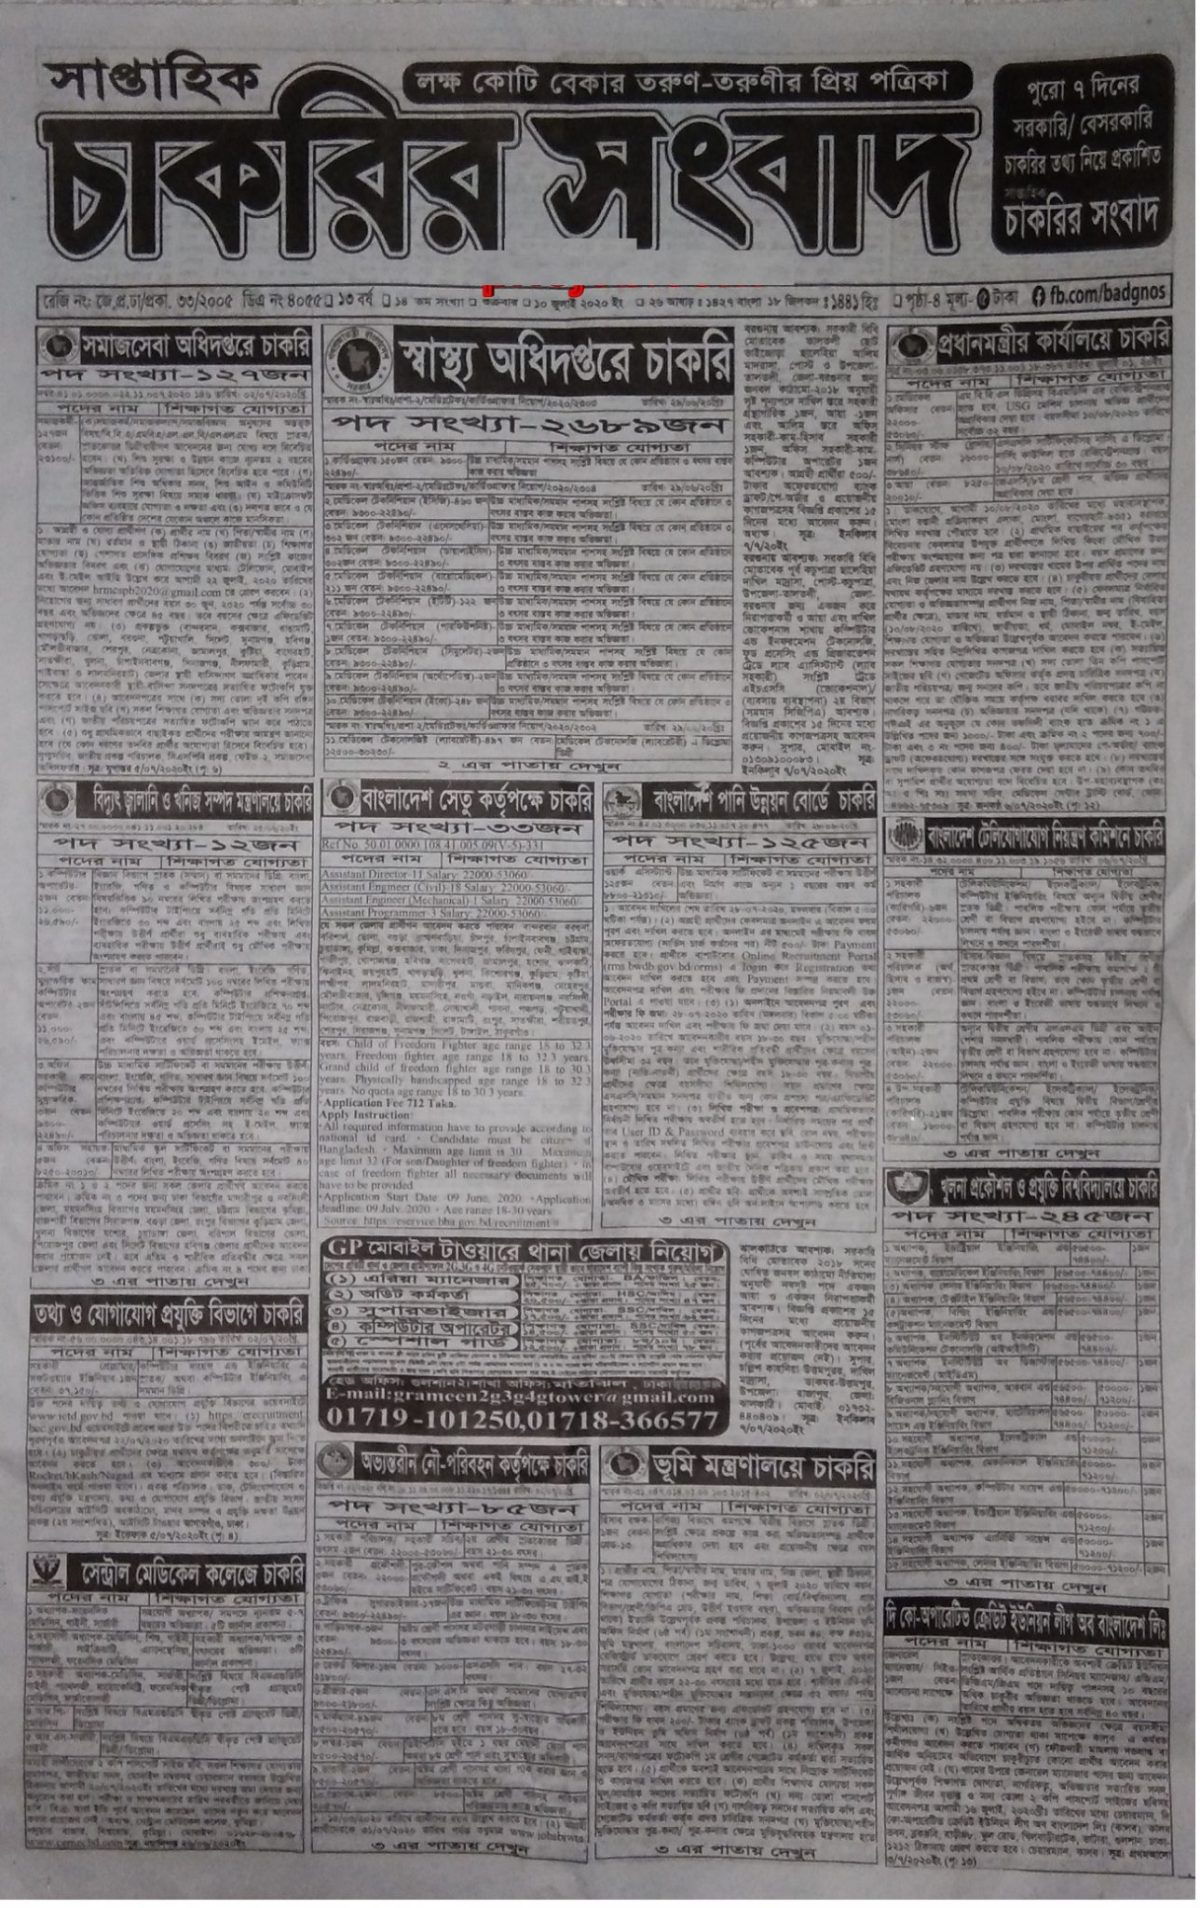 Weekly Jobs Newspaper 10 July 2020